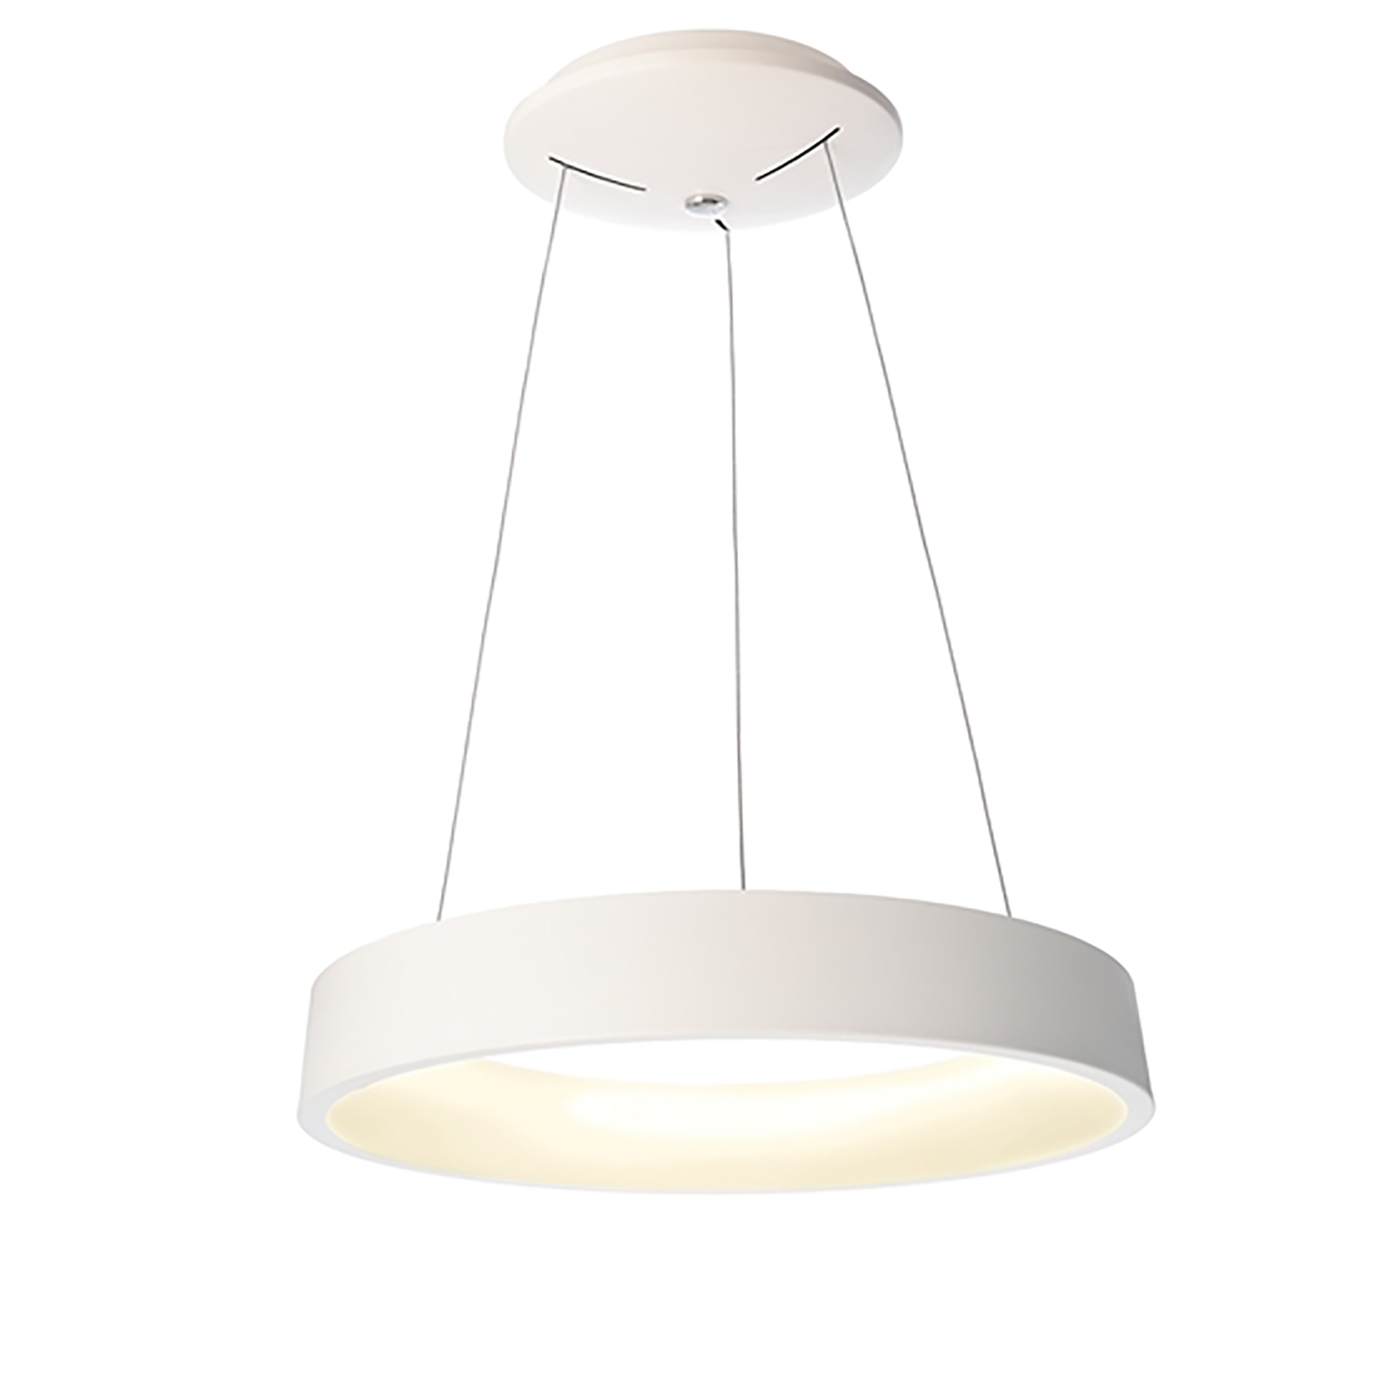 Lustre cercle de lumière de la suspension lampe suspension blanche à led 40W 2600lm